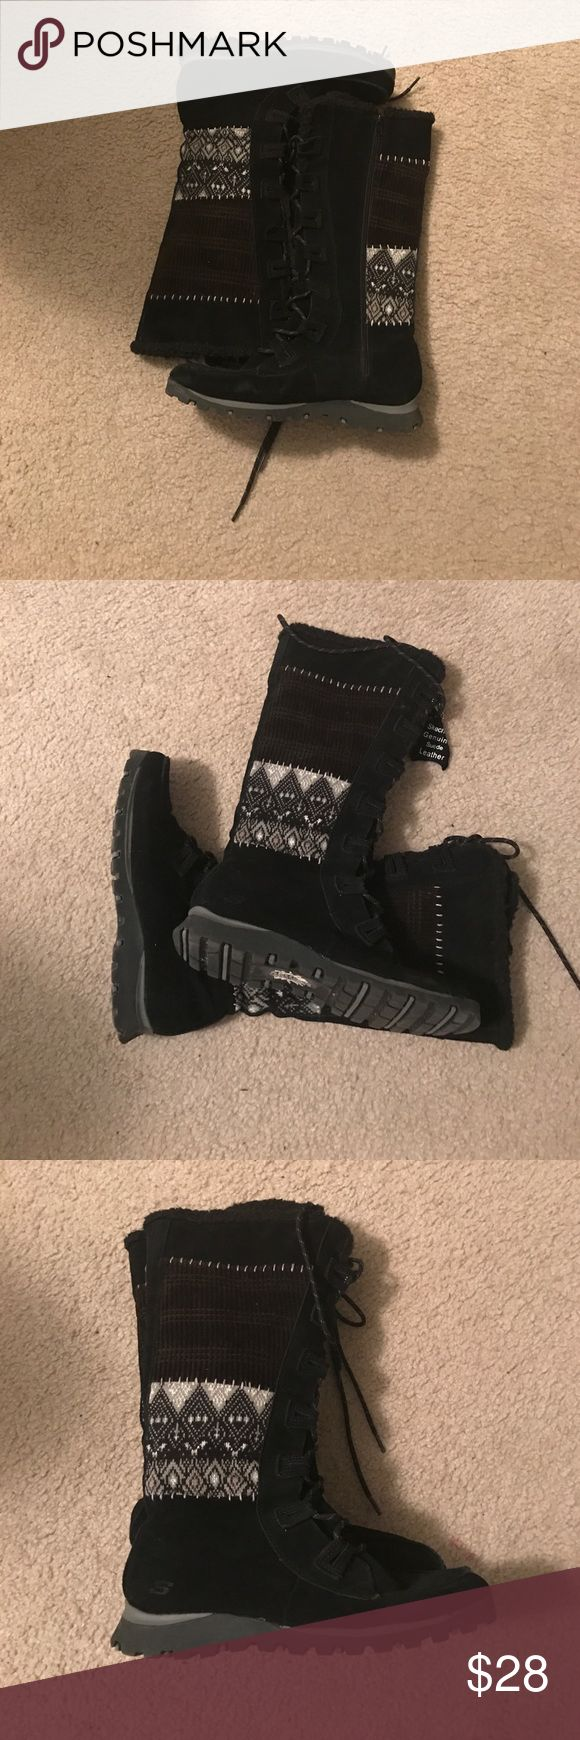 Skechers winter boots Skechers winter boots in good condition with lined fleece... these boots are very warm and well constructed... Skechers Shoes Winter & Rain Boots